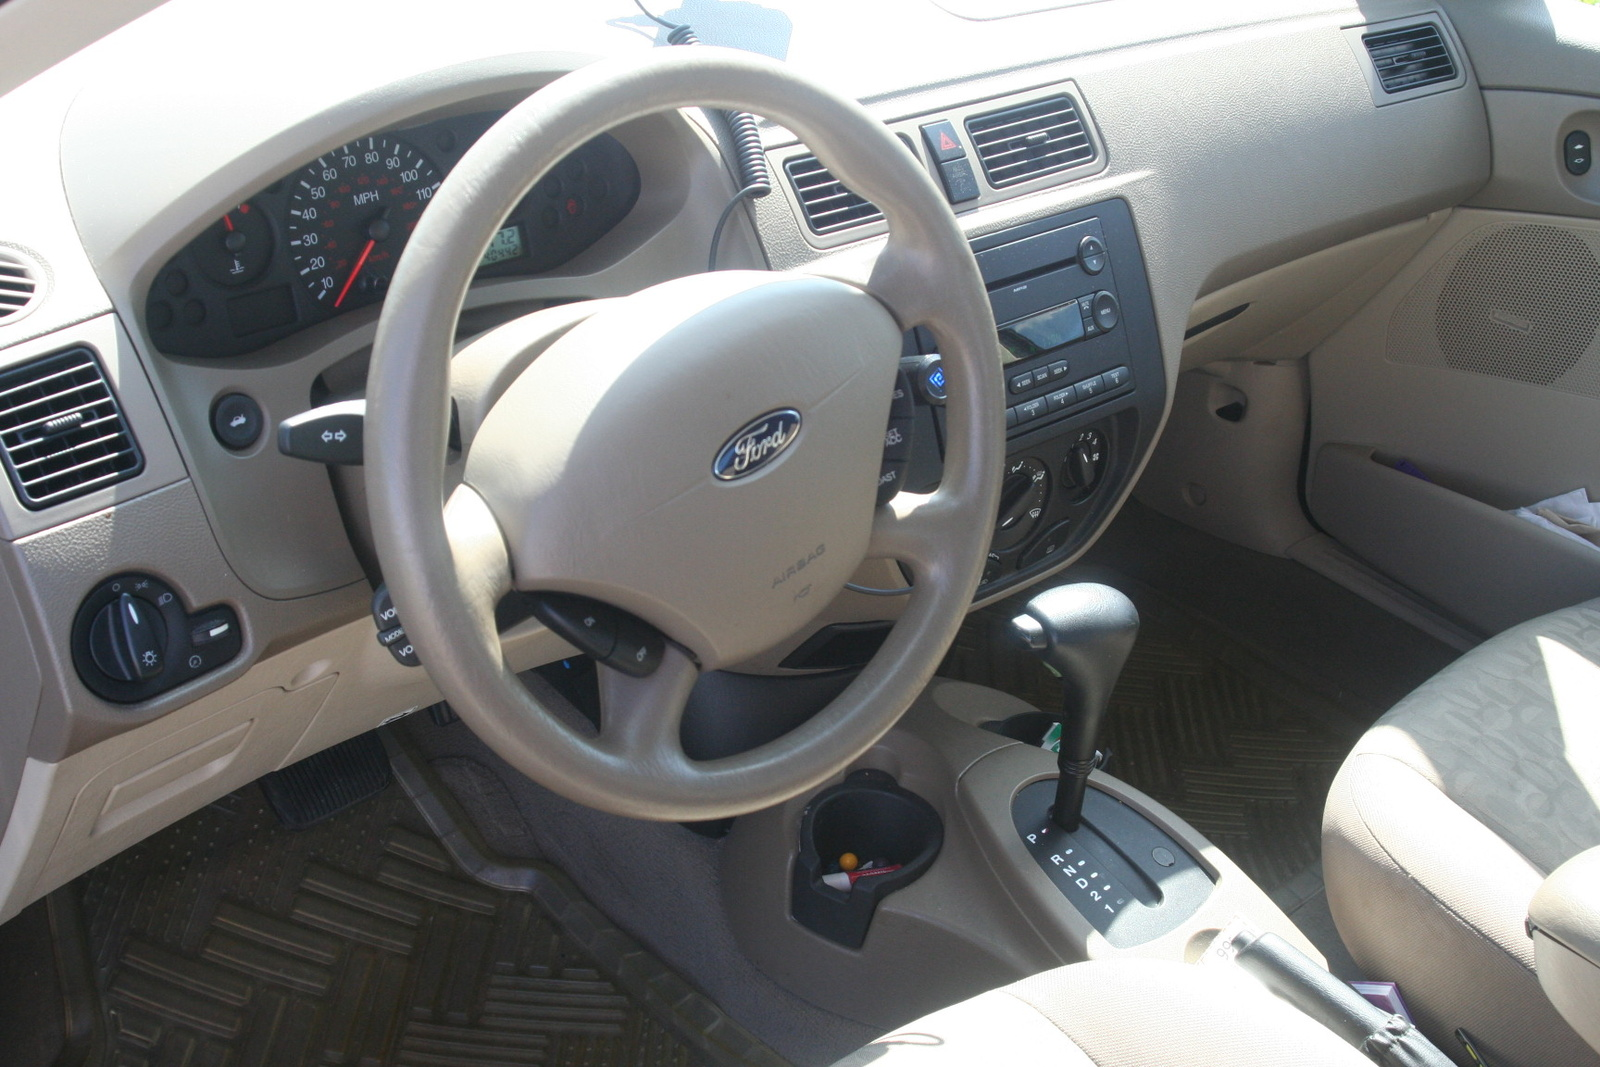 2009 Ford Focus Interior